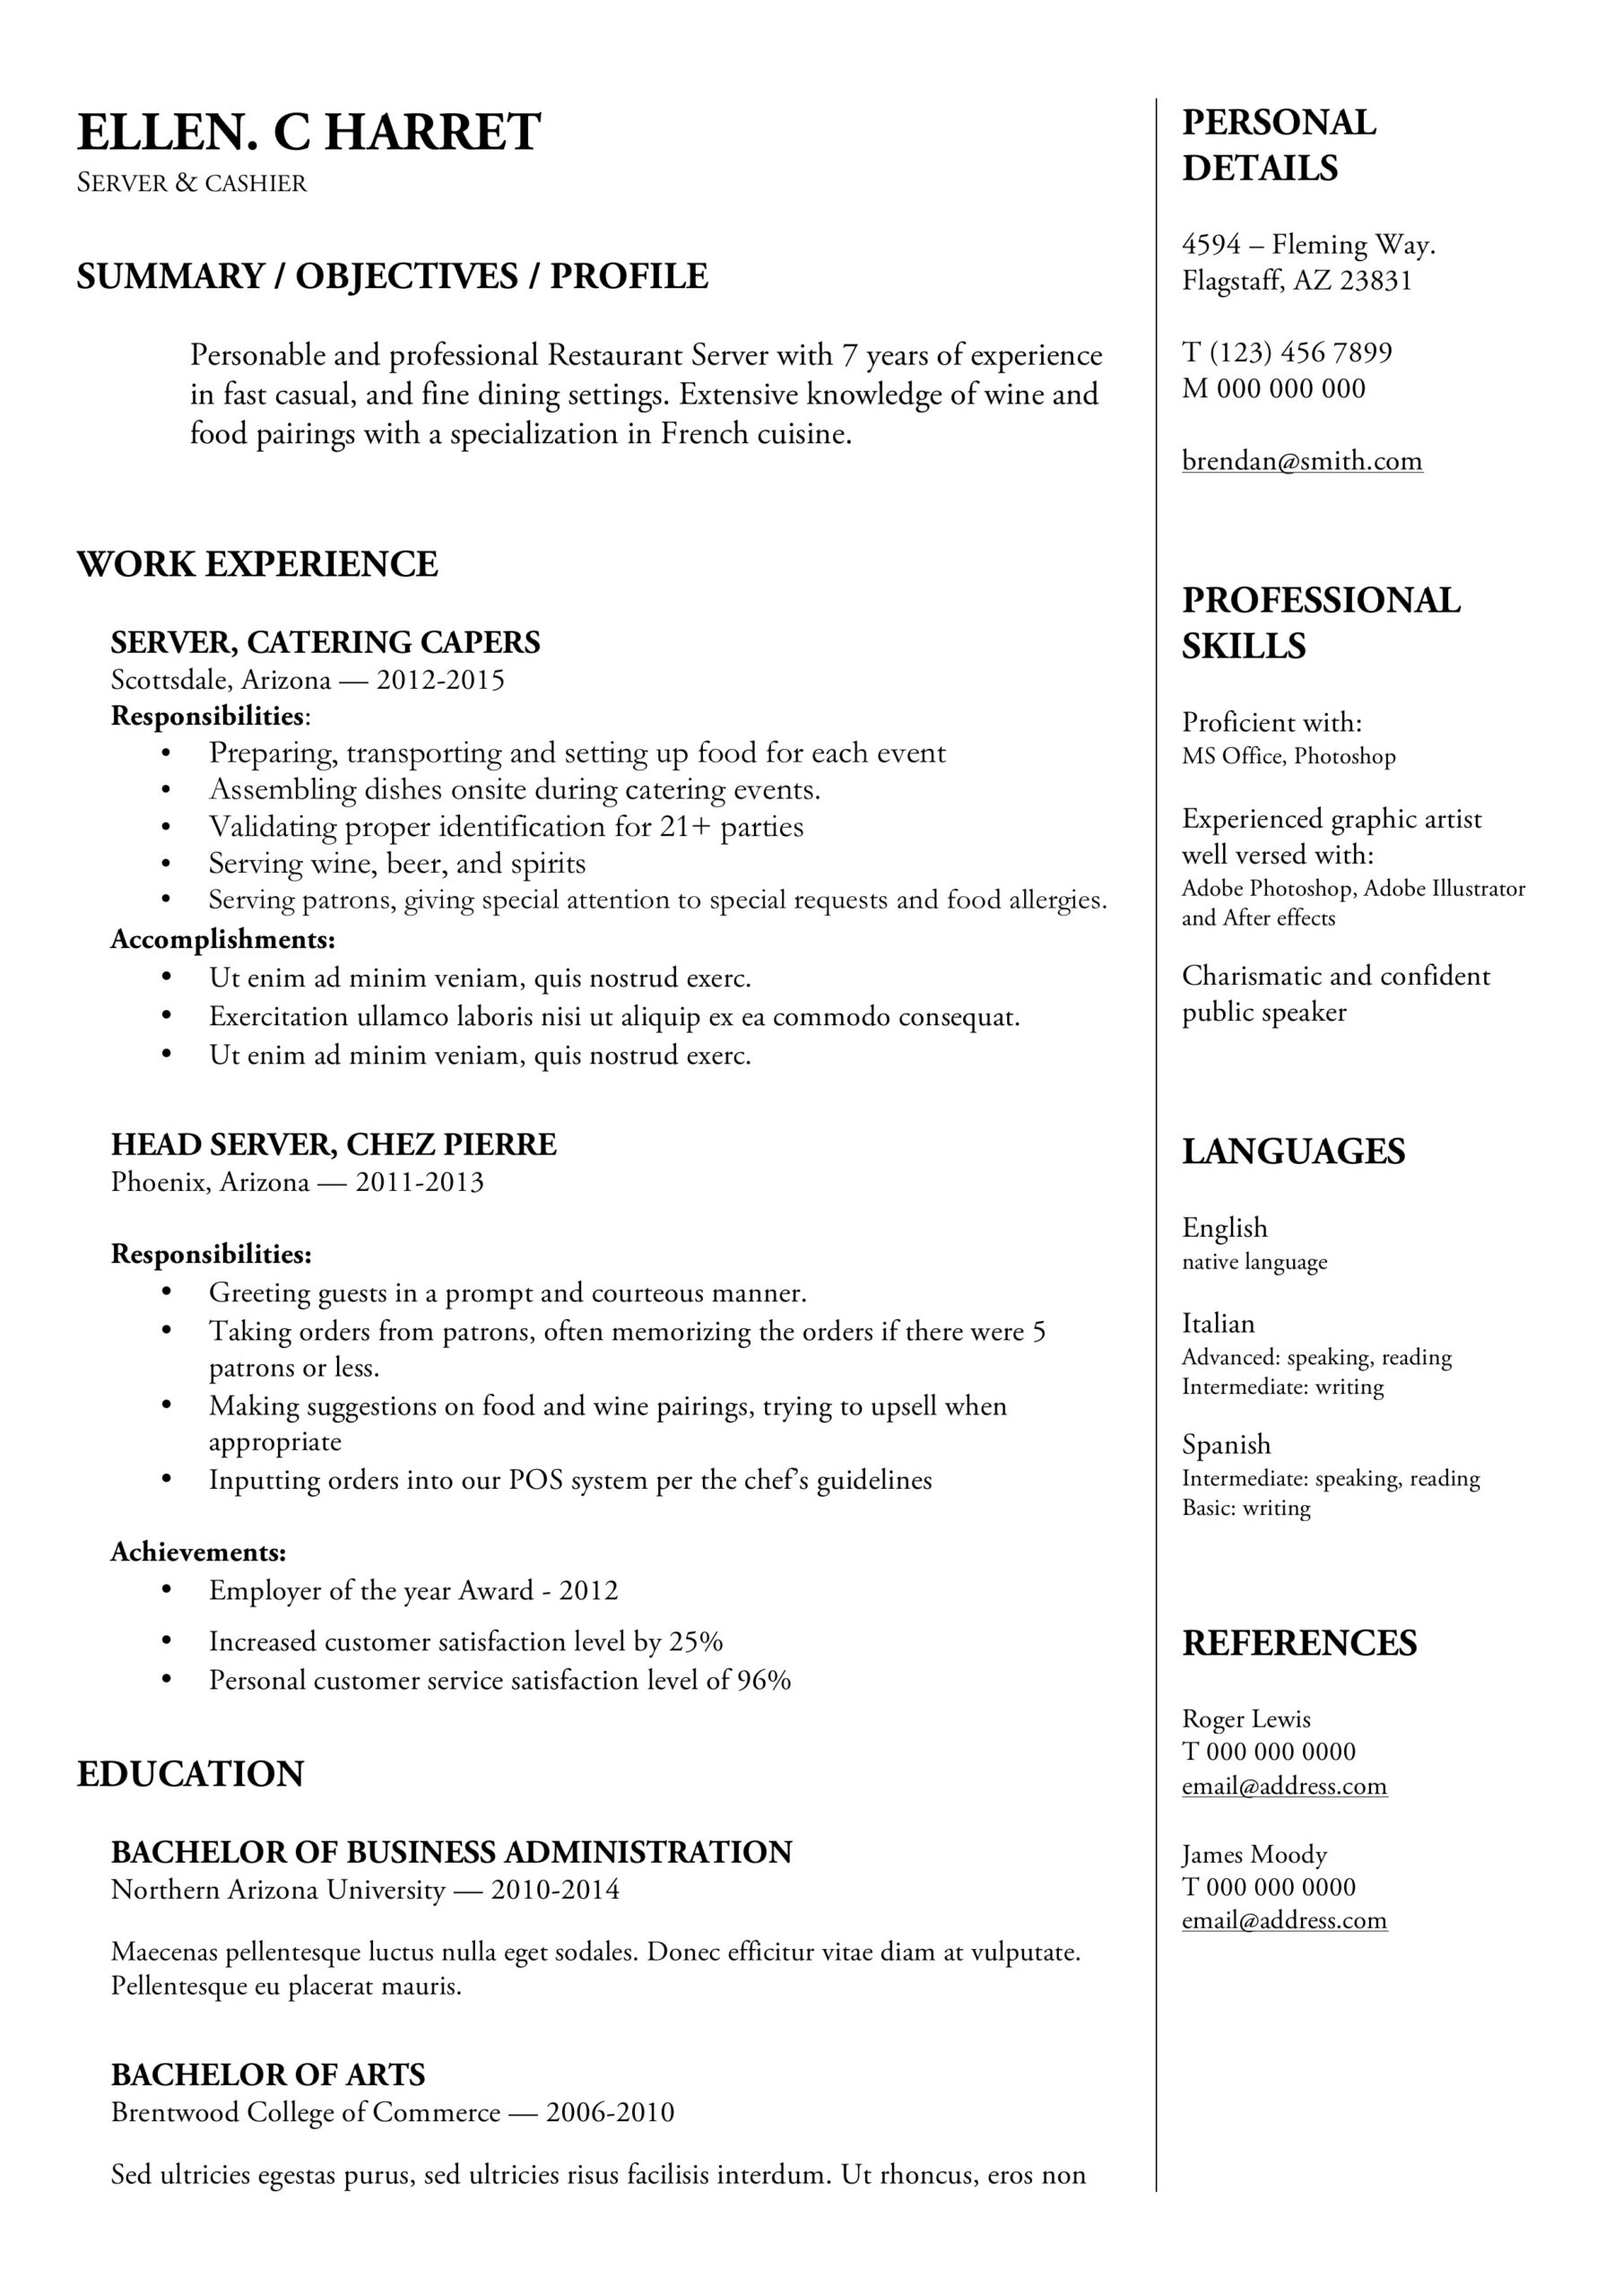 free word resume templates in ms functional template server internship application Resume Functional Resume Template Word 2003